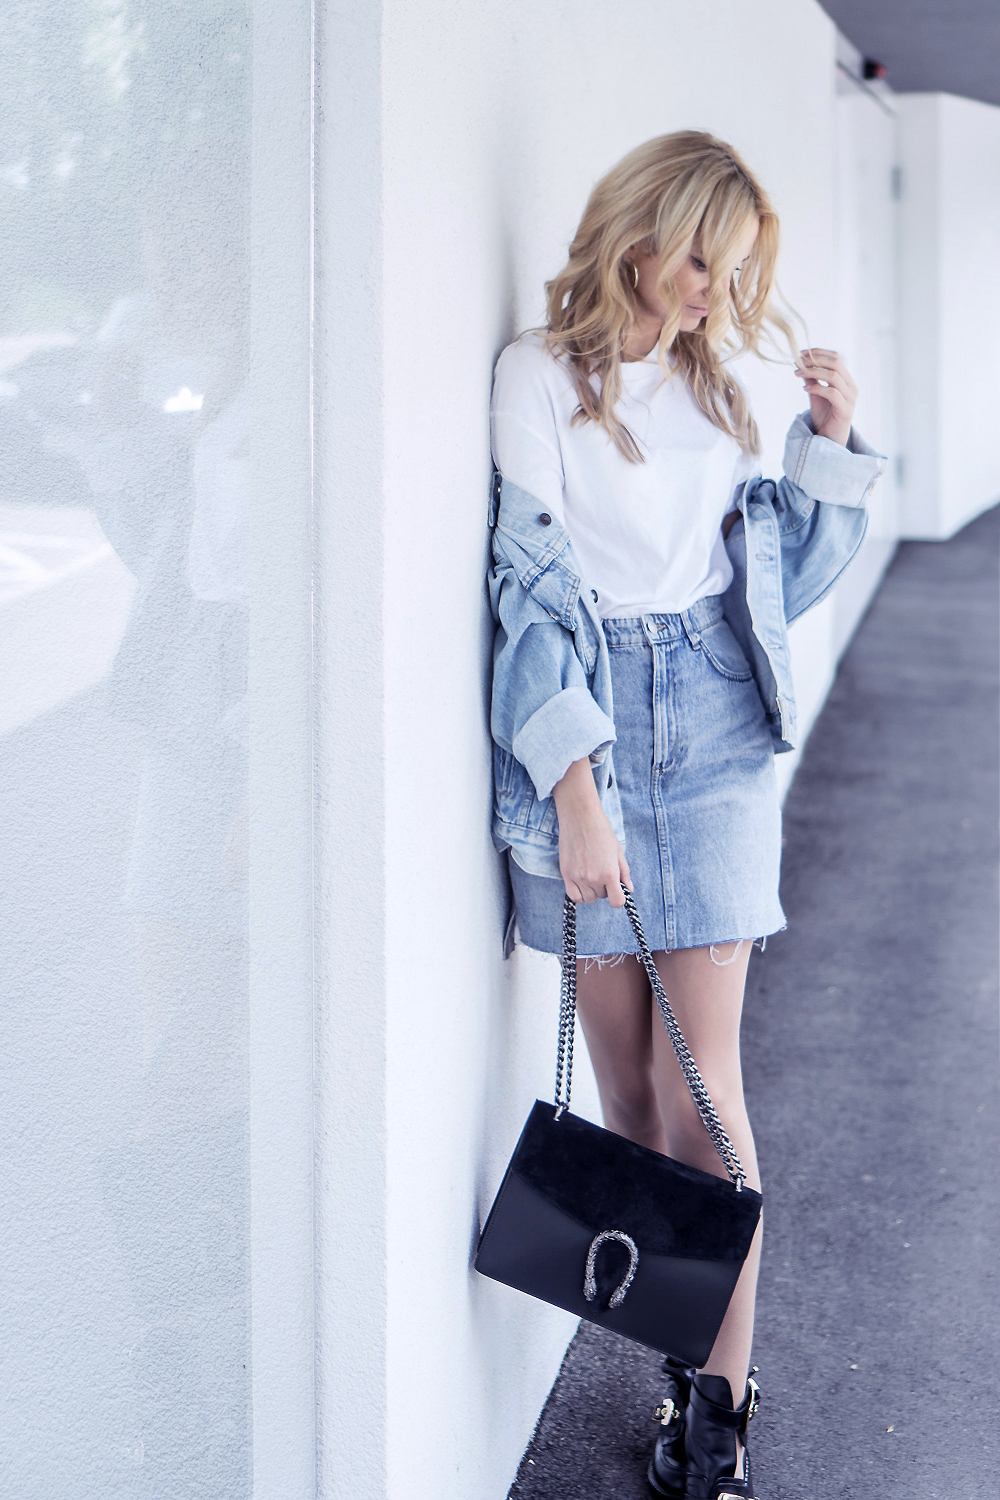 OOTD: Casual & Basic. Denim Street Style Outfit.